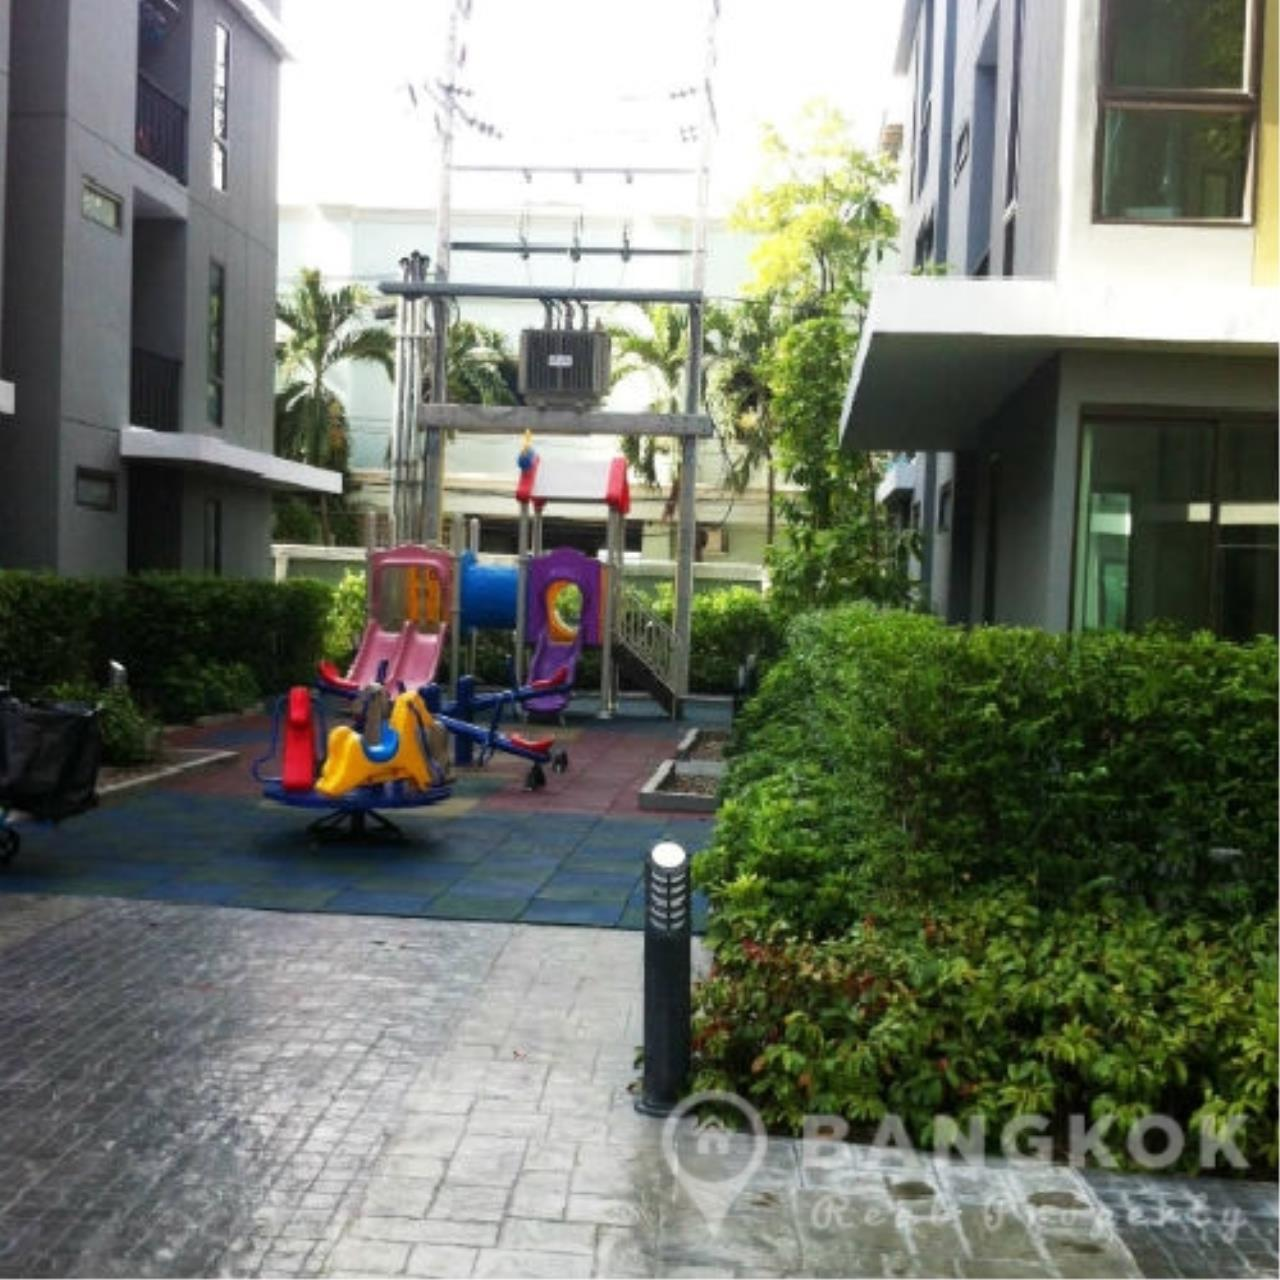 Bangkok Real Property Agency's ICondo Sukhumvit 103 | Modern 1 Bed 1 Bath with Garden View in Udomsuk 8